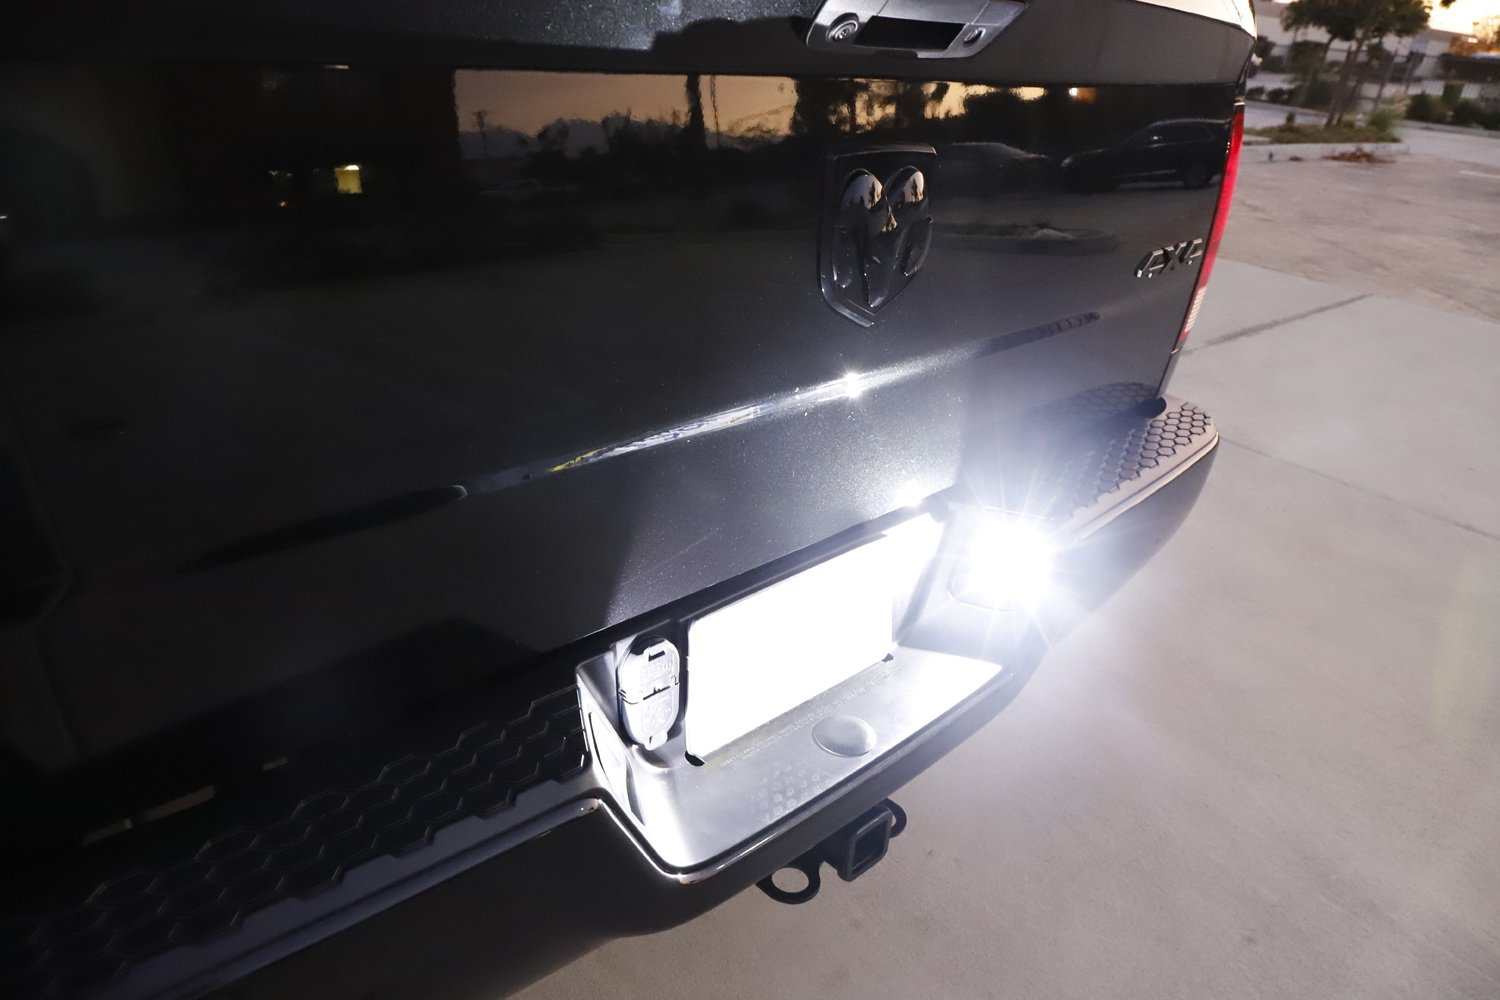 Powered by 18-SMD Xenon White LED iJDMTOY Replace Factory Number Frame OEM-Fit 3W Full License Plate Light Kit for 2003-18 Dodge RAM 1500 2500 3500